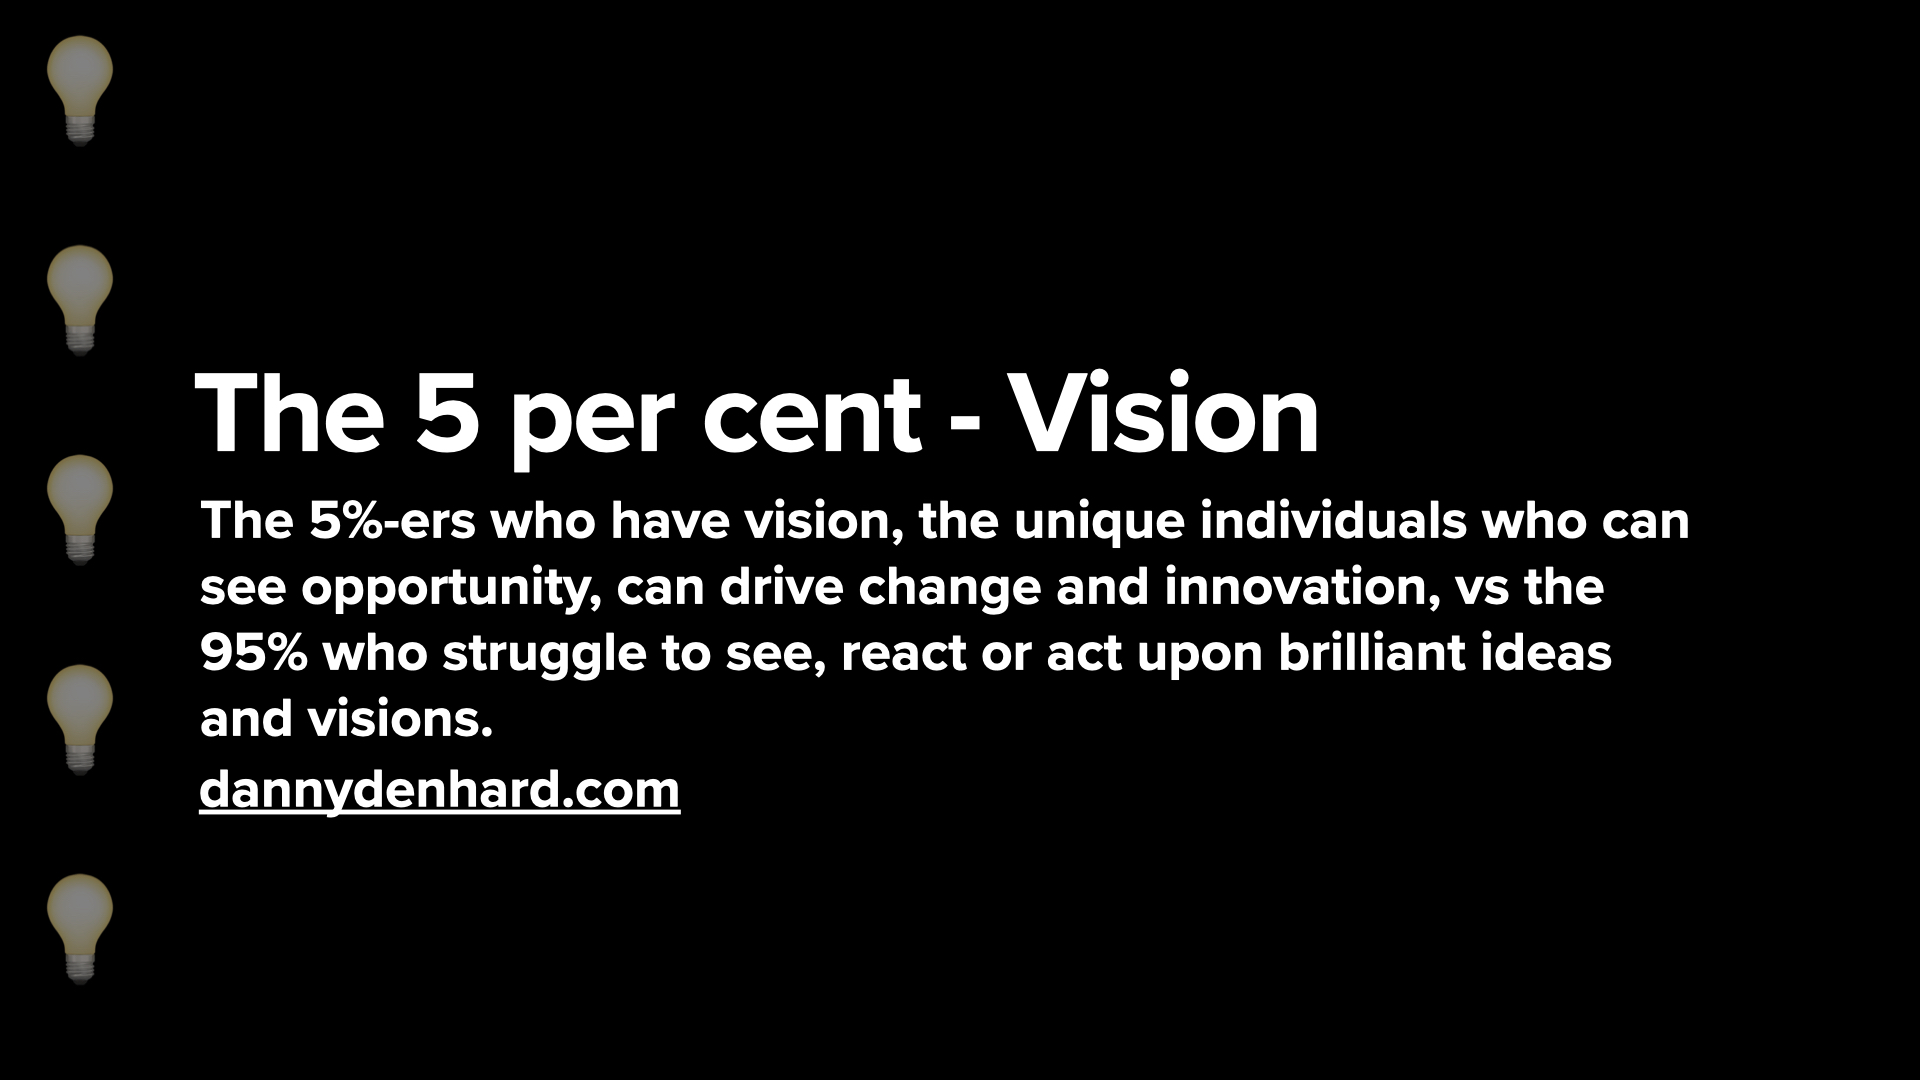 Vision - the 5 per cent